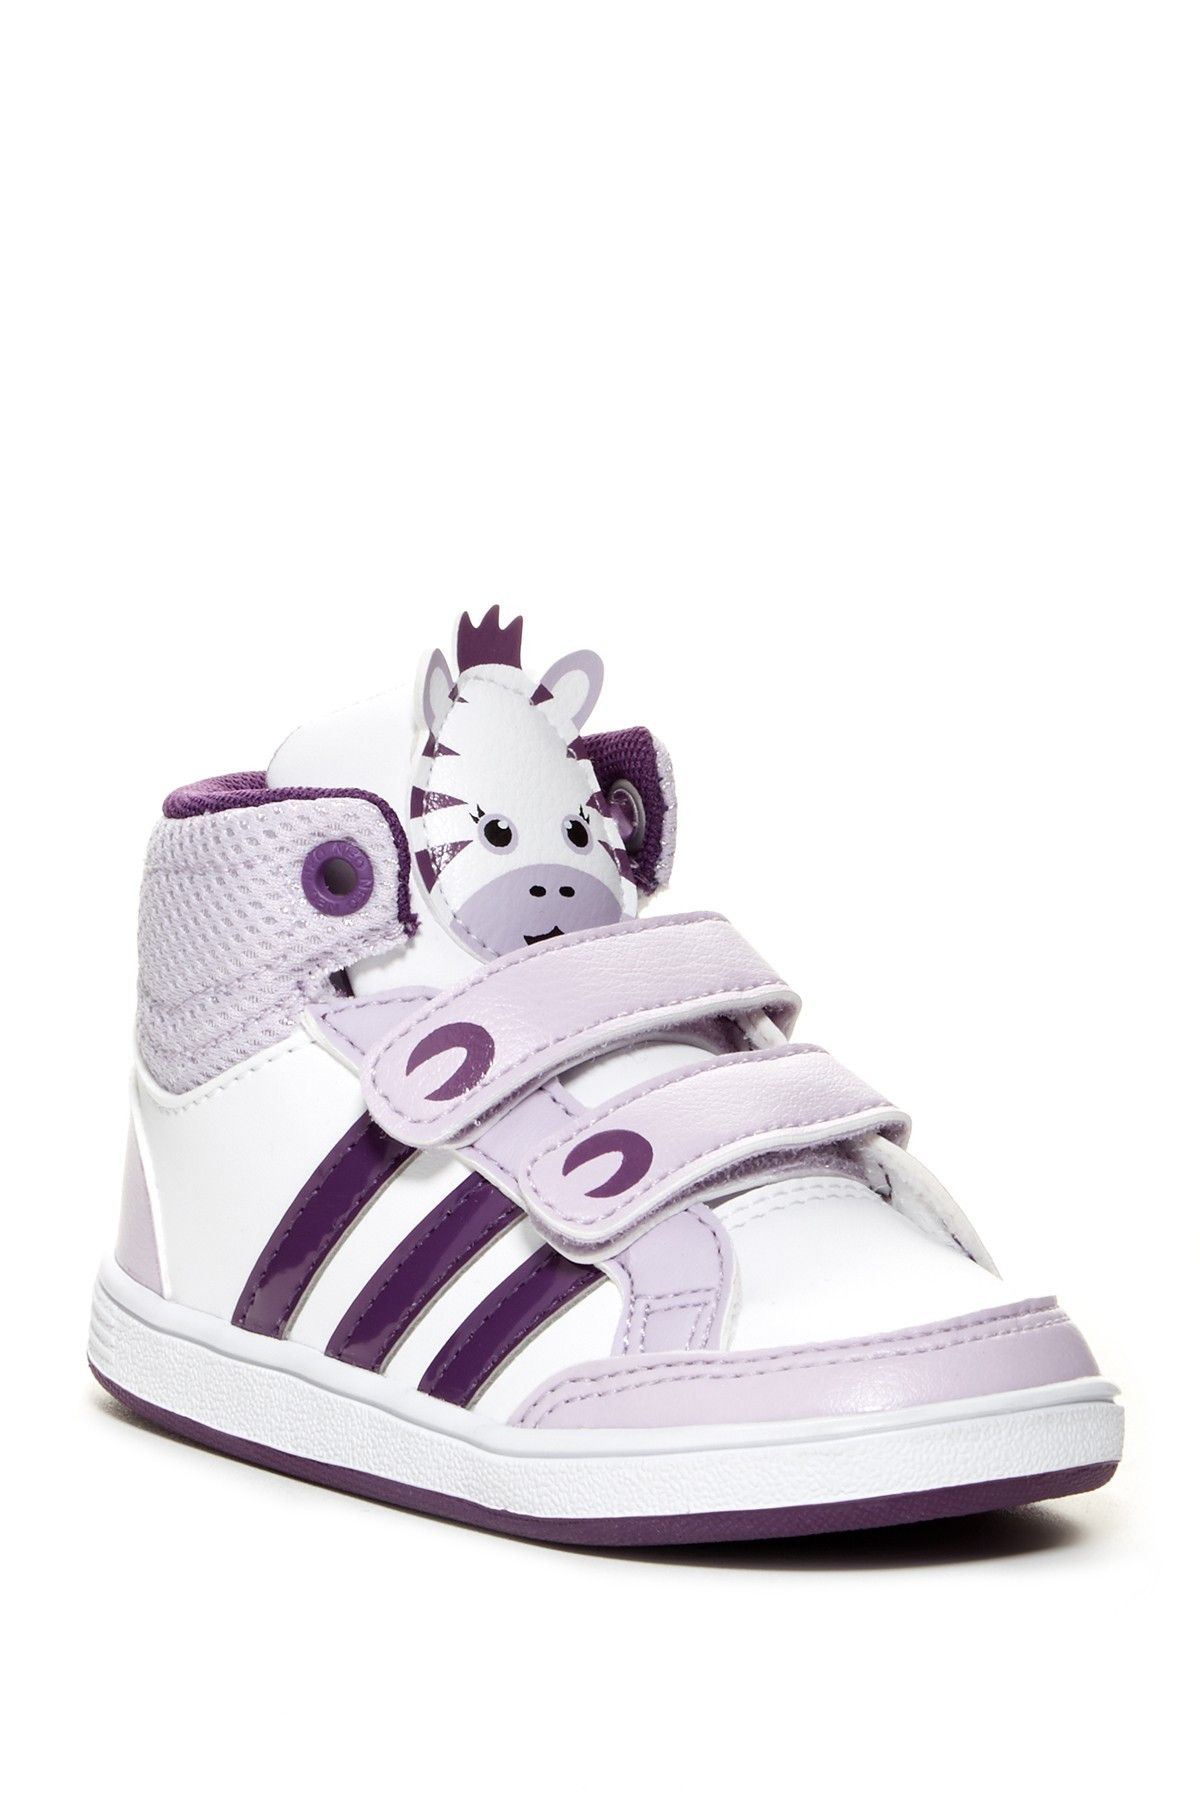 sneakers for cheap 53c92 fefef ... new zealand adidas neo hoops animal high top sneaker baby toddler baby  sneakers 73568 4d30c